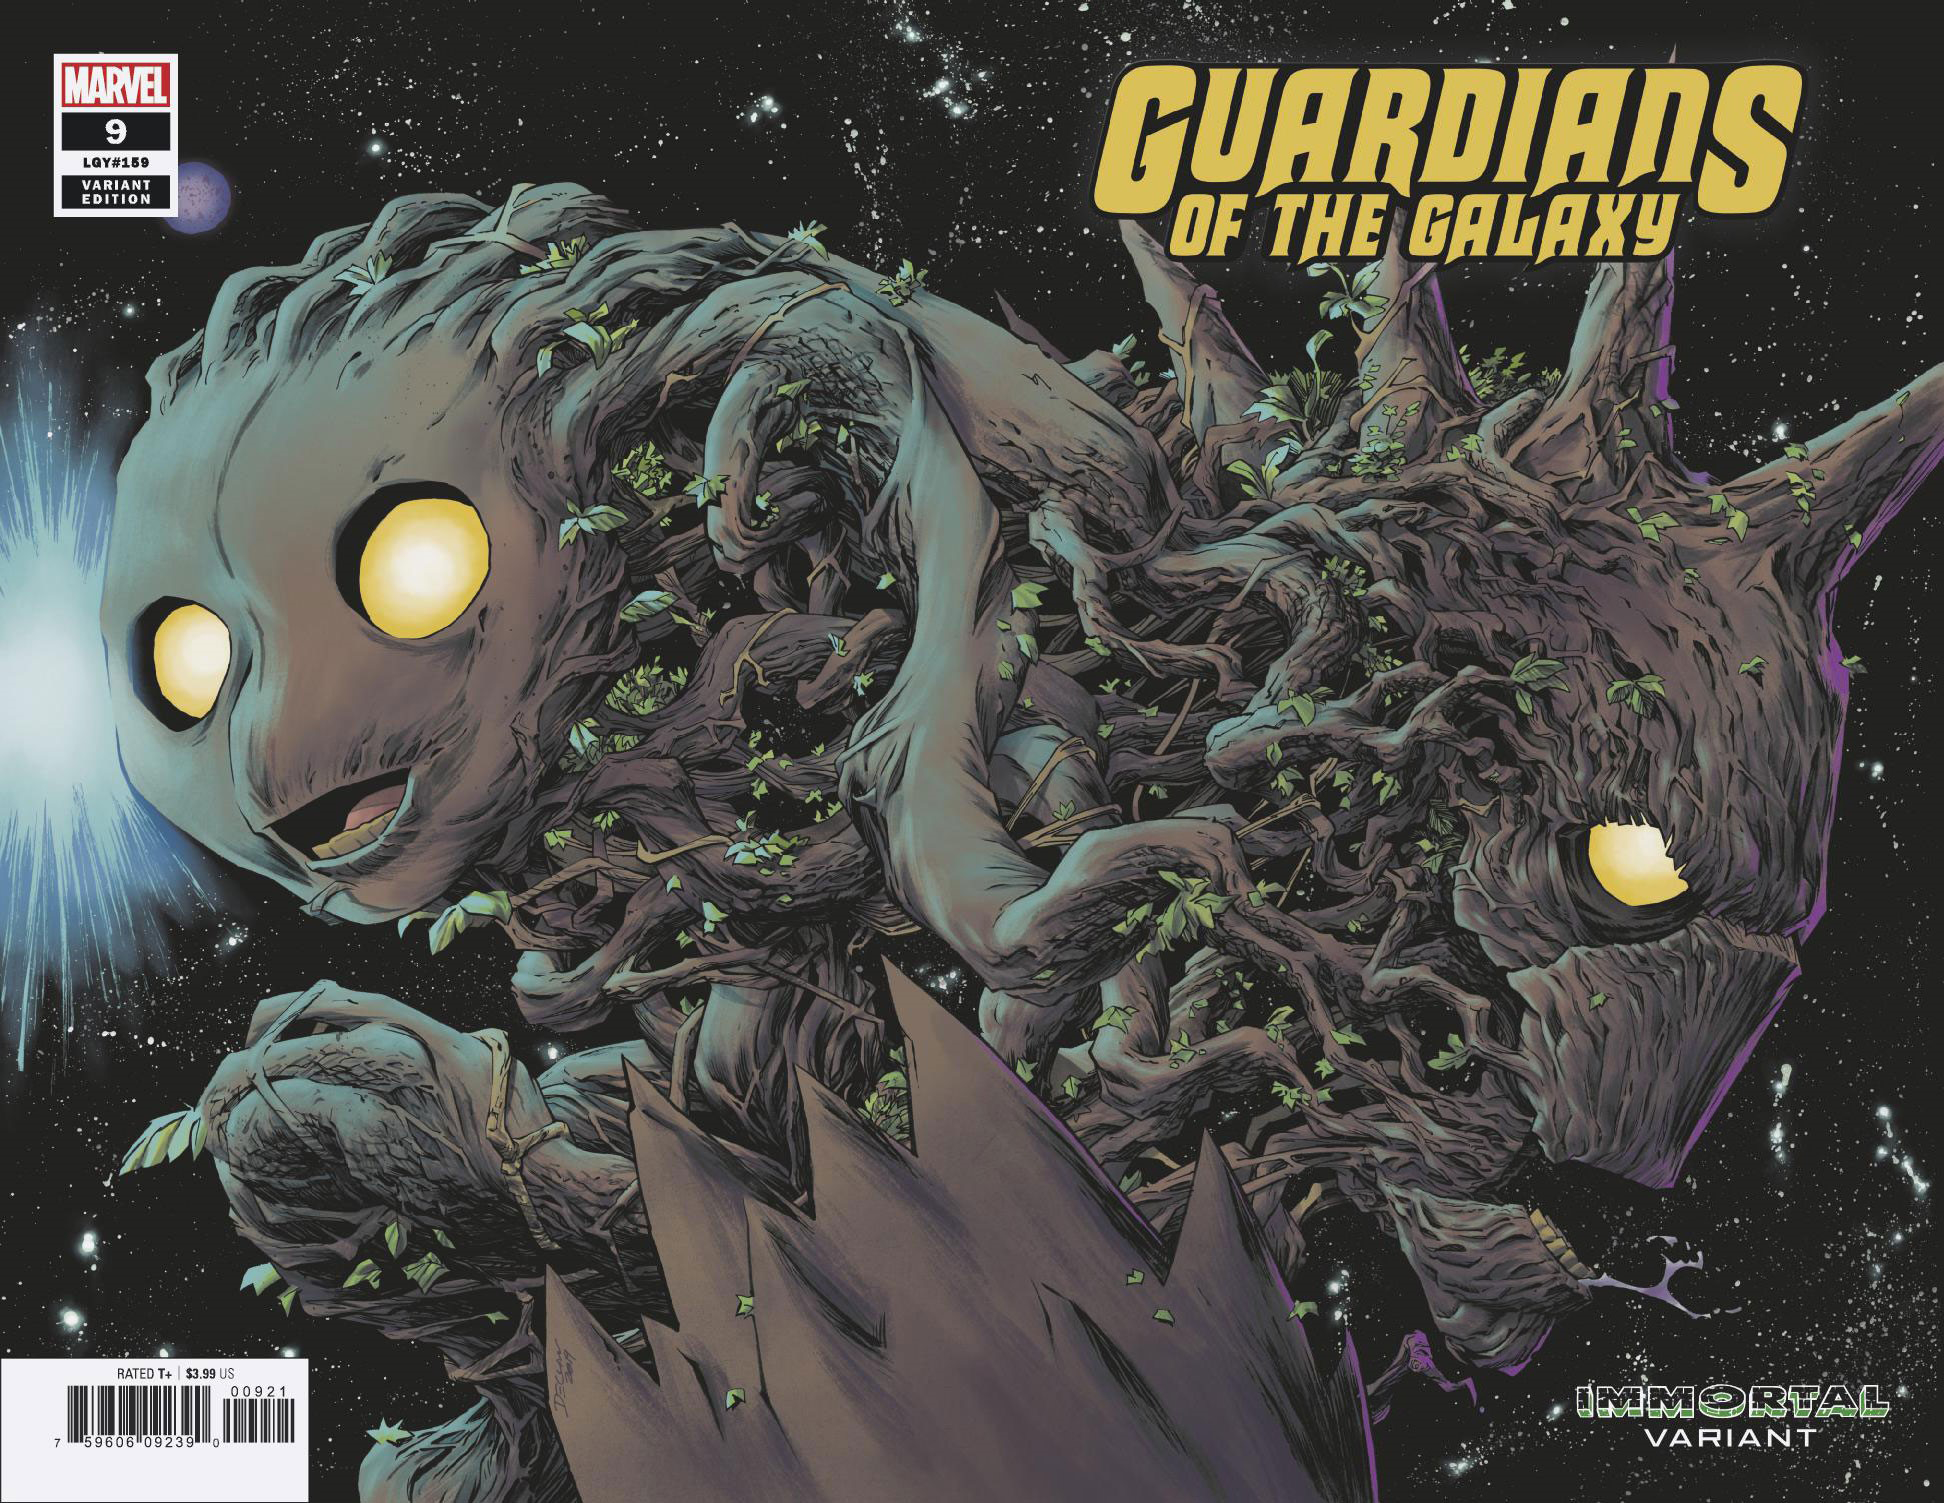 GUARDIANS OF THE GALAXY #9 SHALVEY IMMORTAL WRAPAROUND VAR